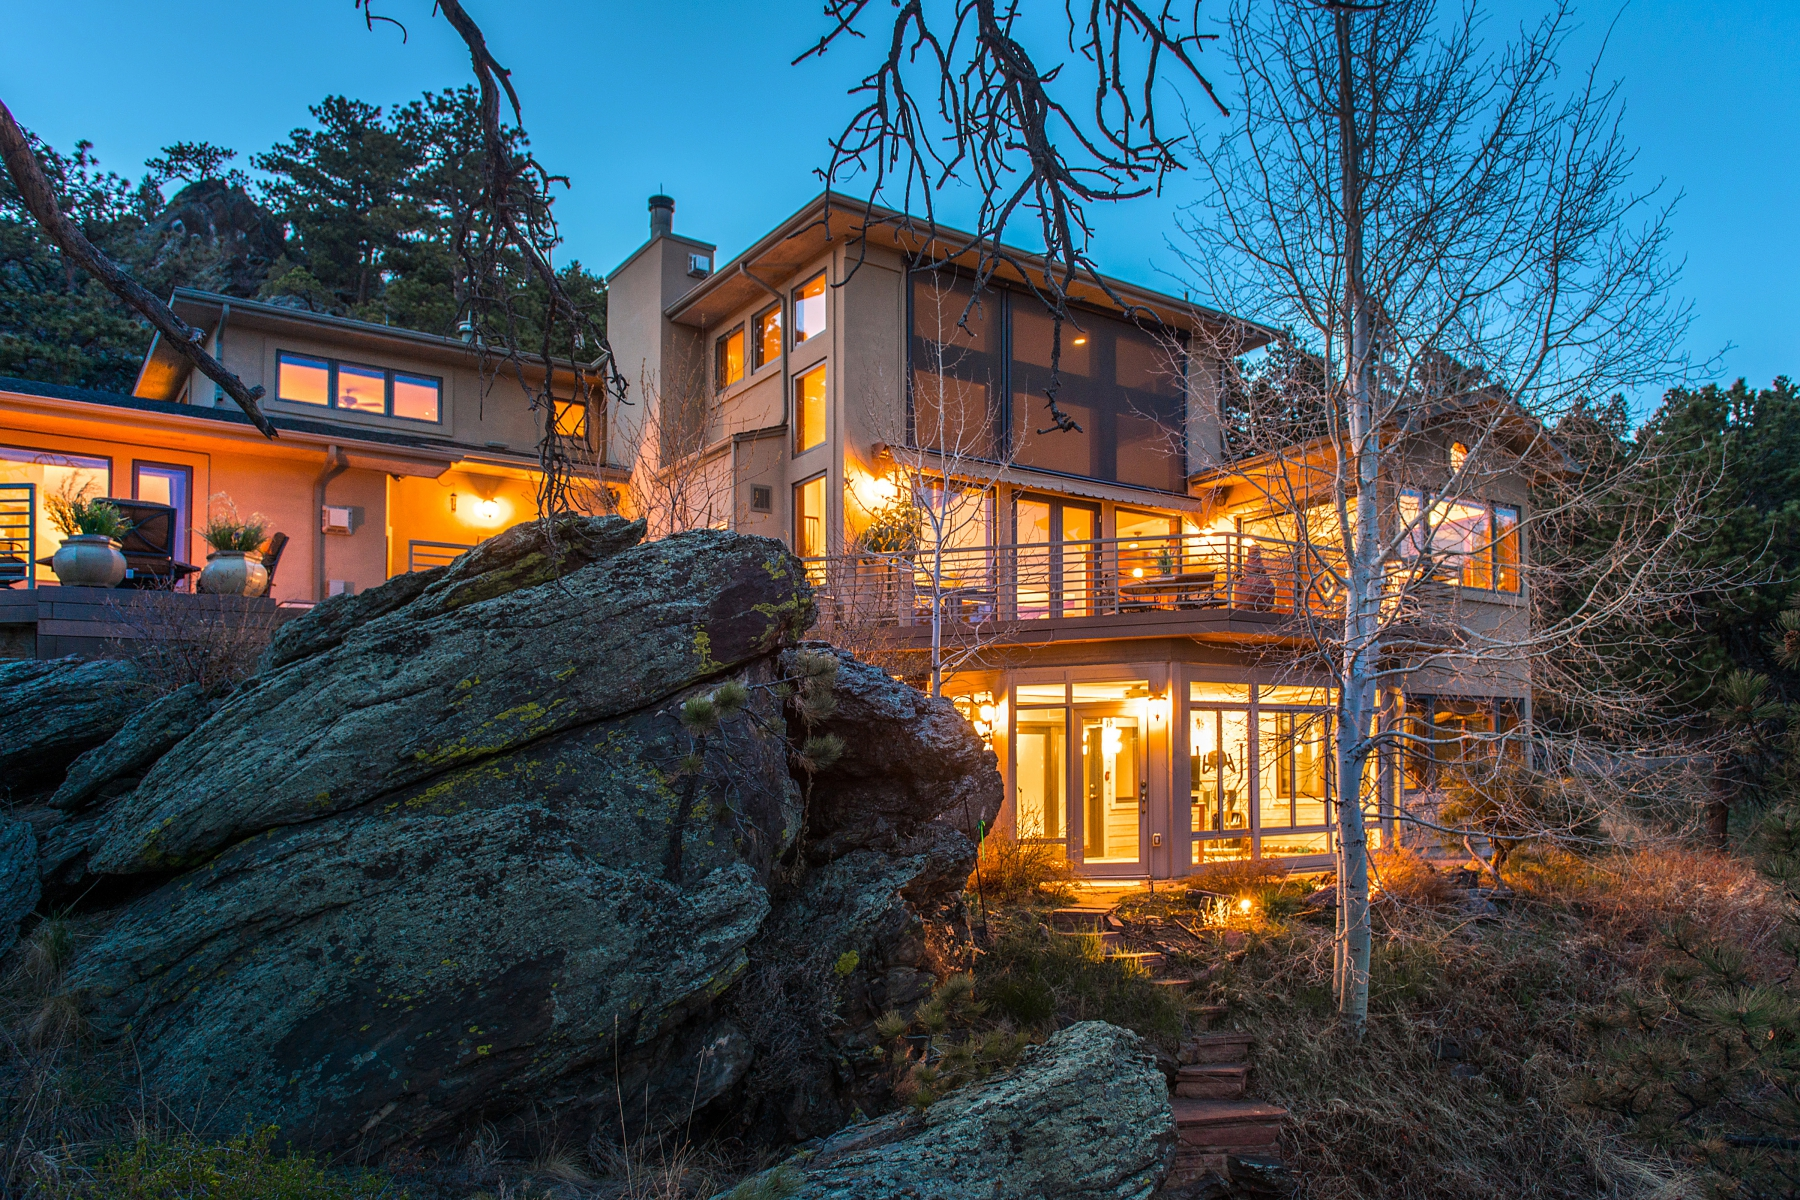 Property For Sale at Exquisite Luxury Colorado Mountain Home